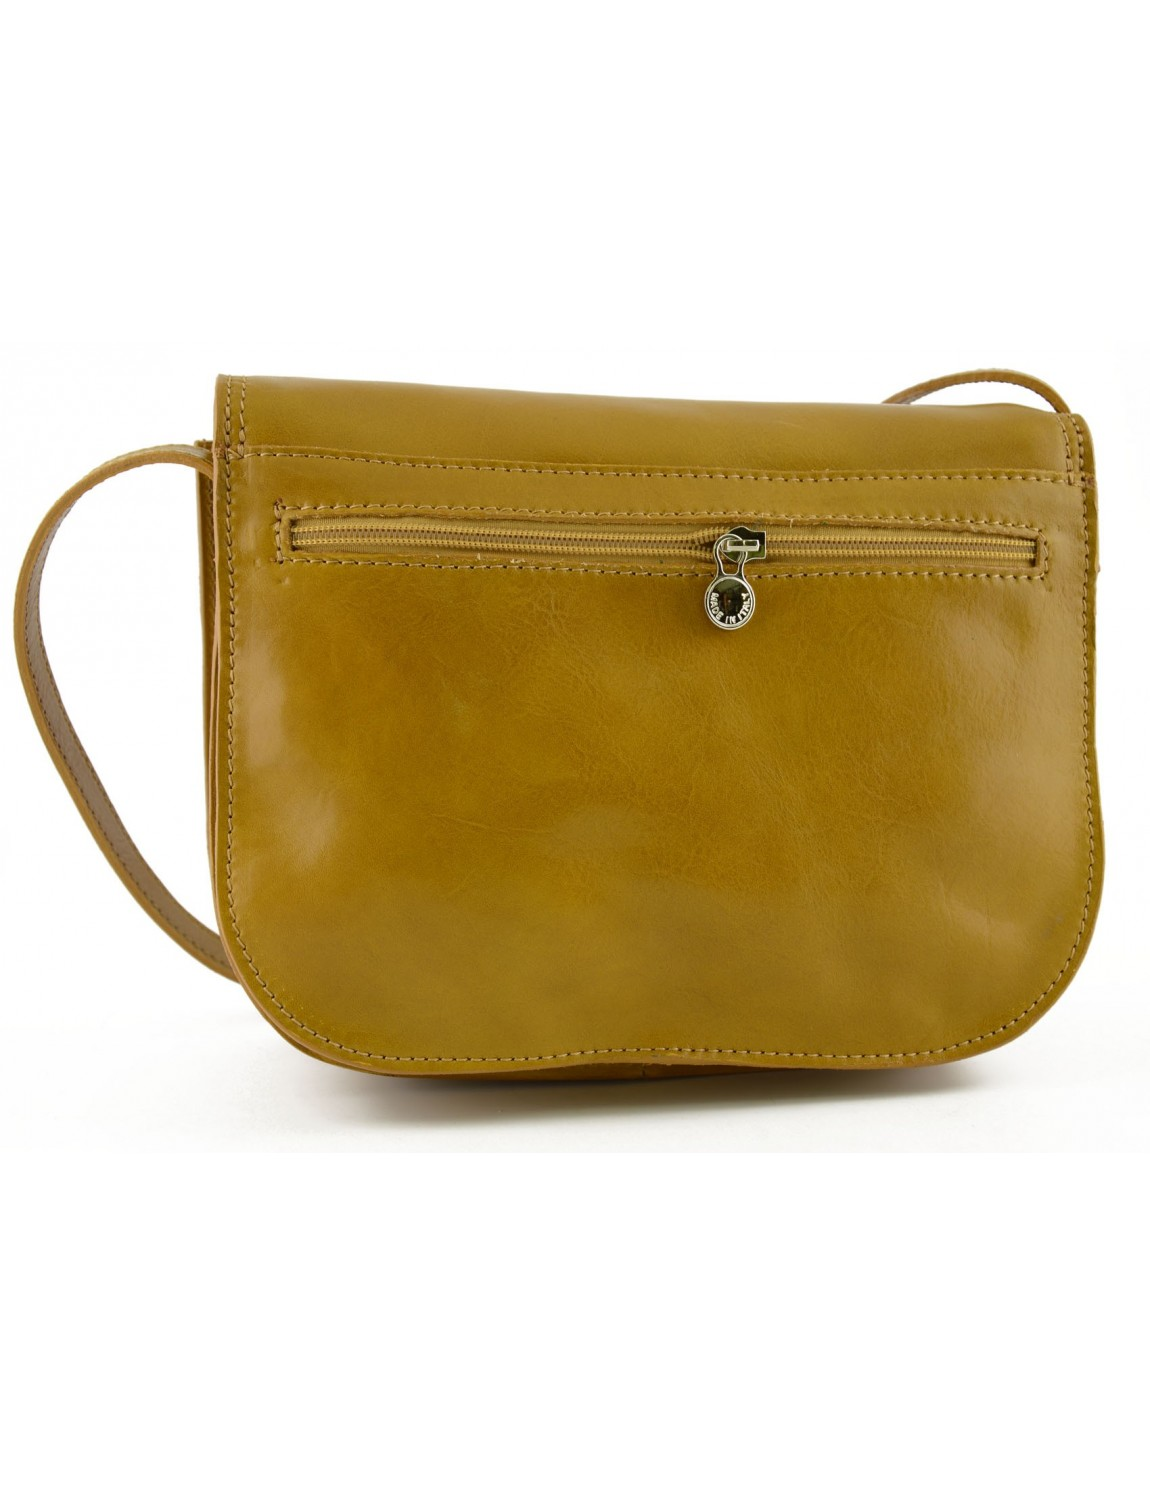 Woman Genuine Leather Shoulder Bag with 3 compartments - Annie